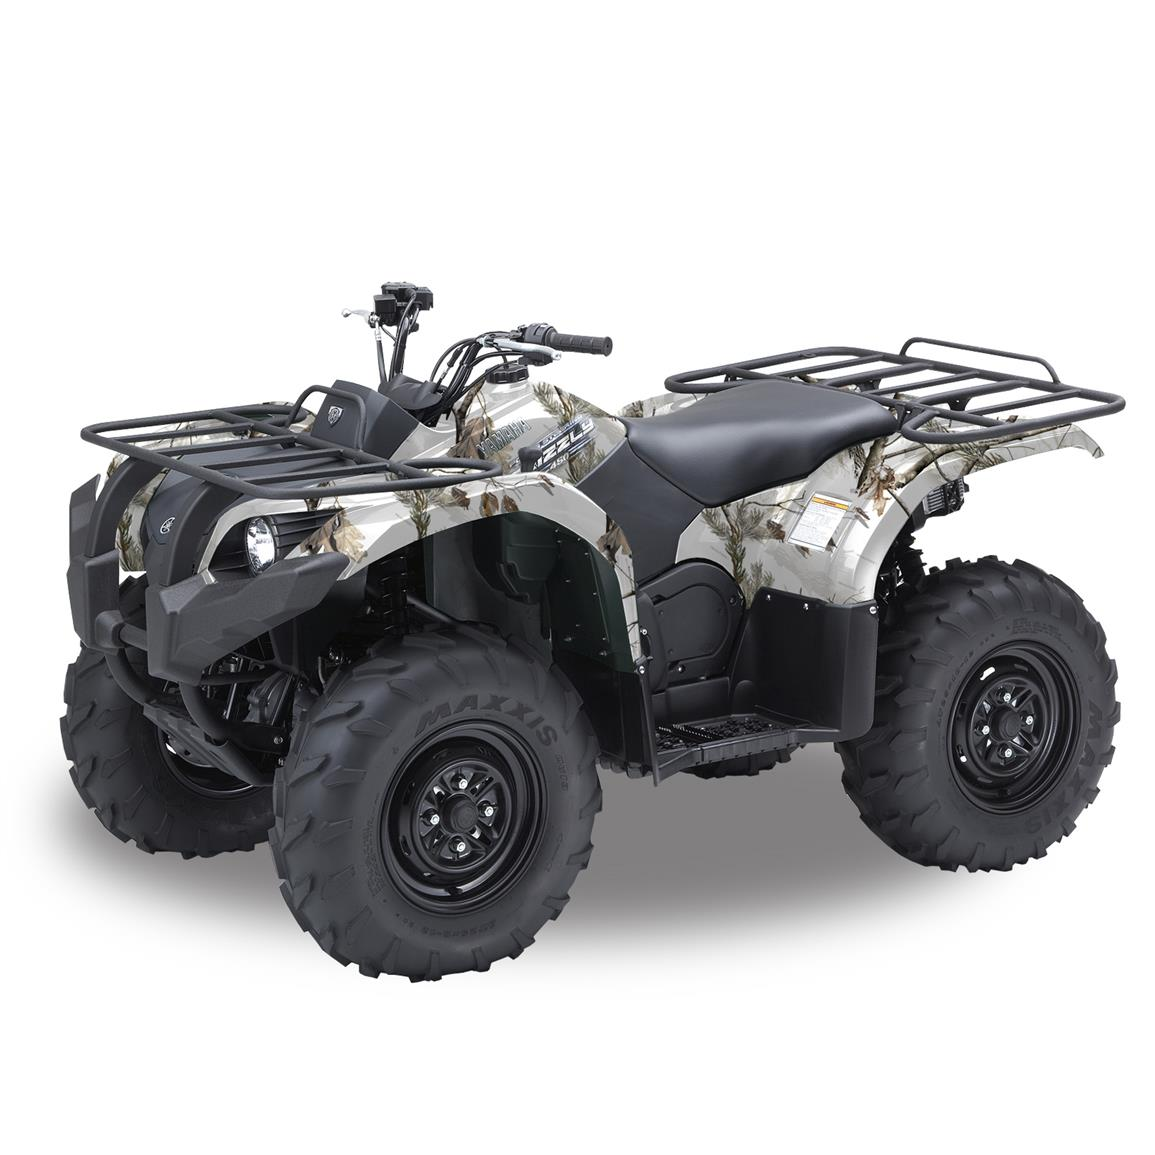 Realtree Camo Graphics ATV Camo Kit, 40 Square Feet, Realtree Ap Snow